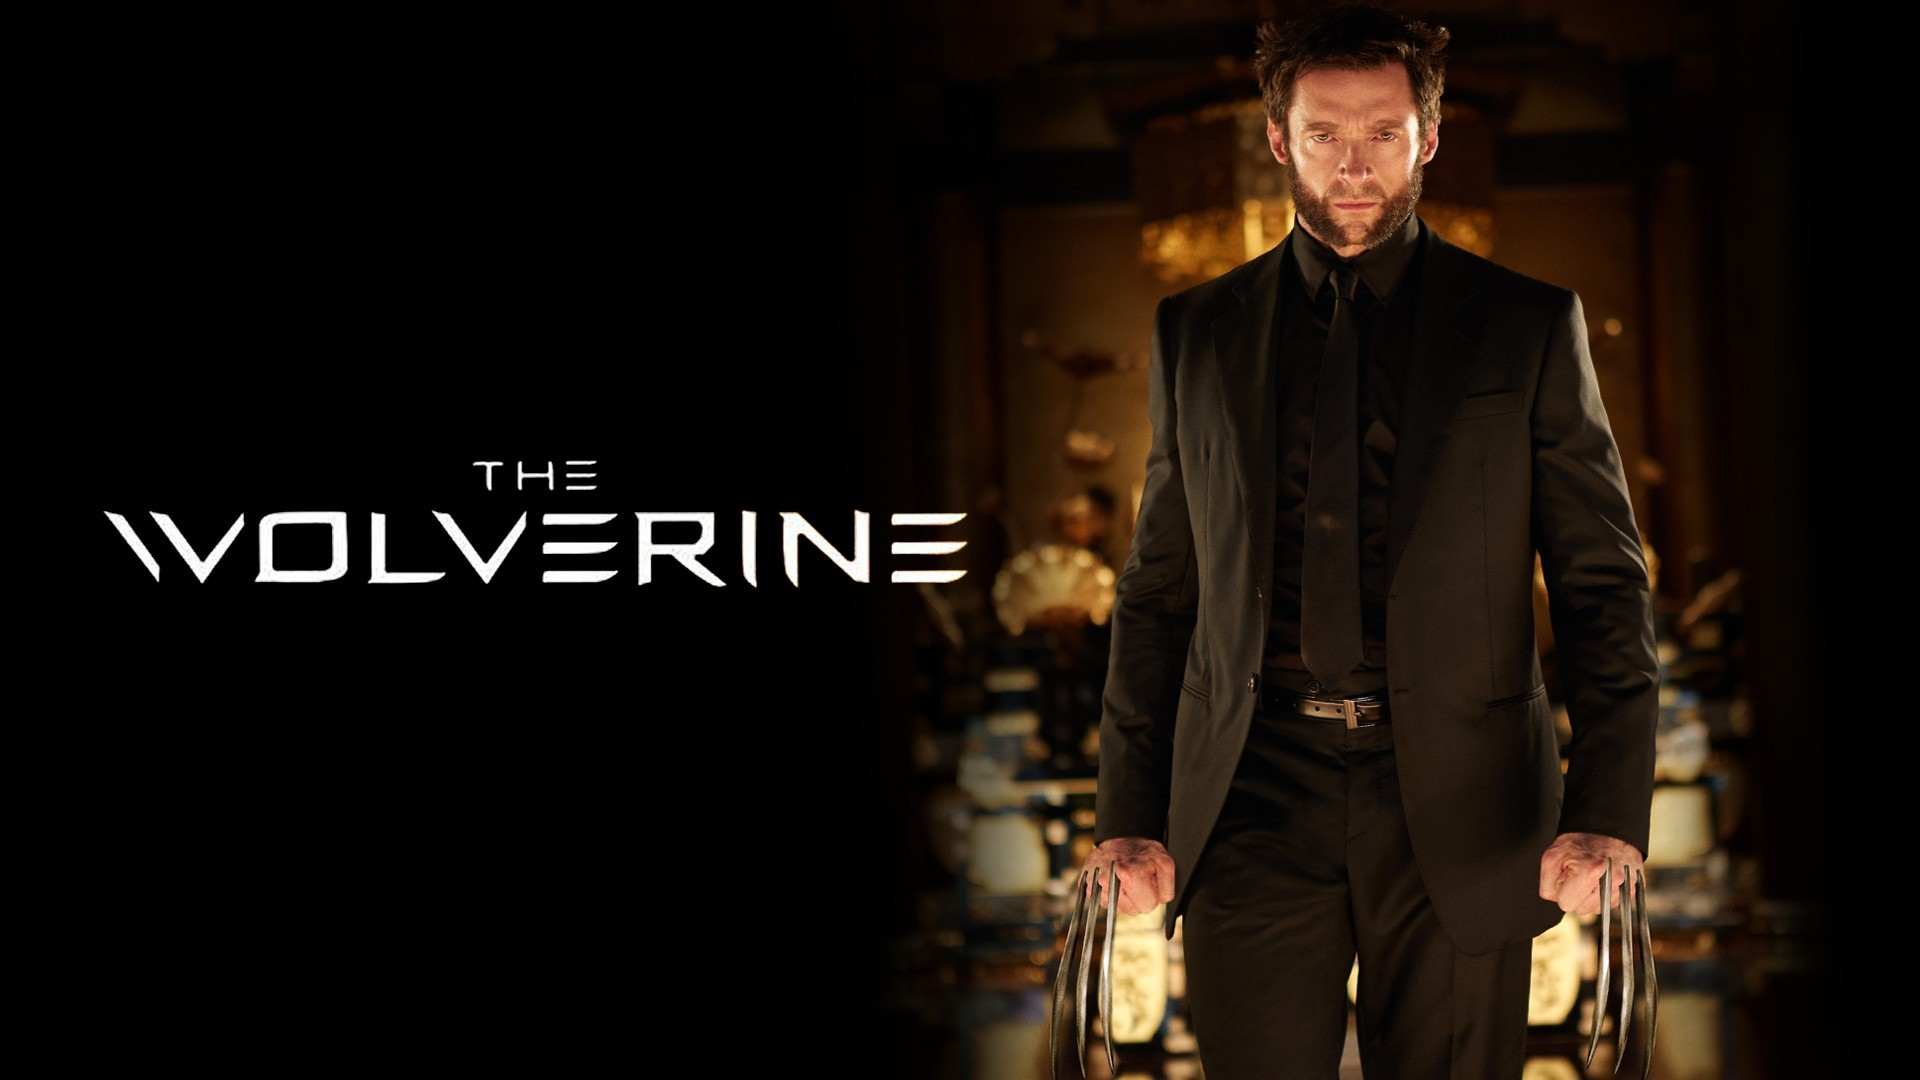 The wolverine full hd wallpaper and background image 1920x1080 movie the wolverine wolverine wallpaper voltagebd Images